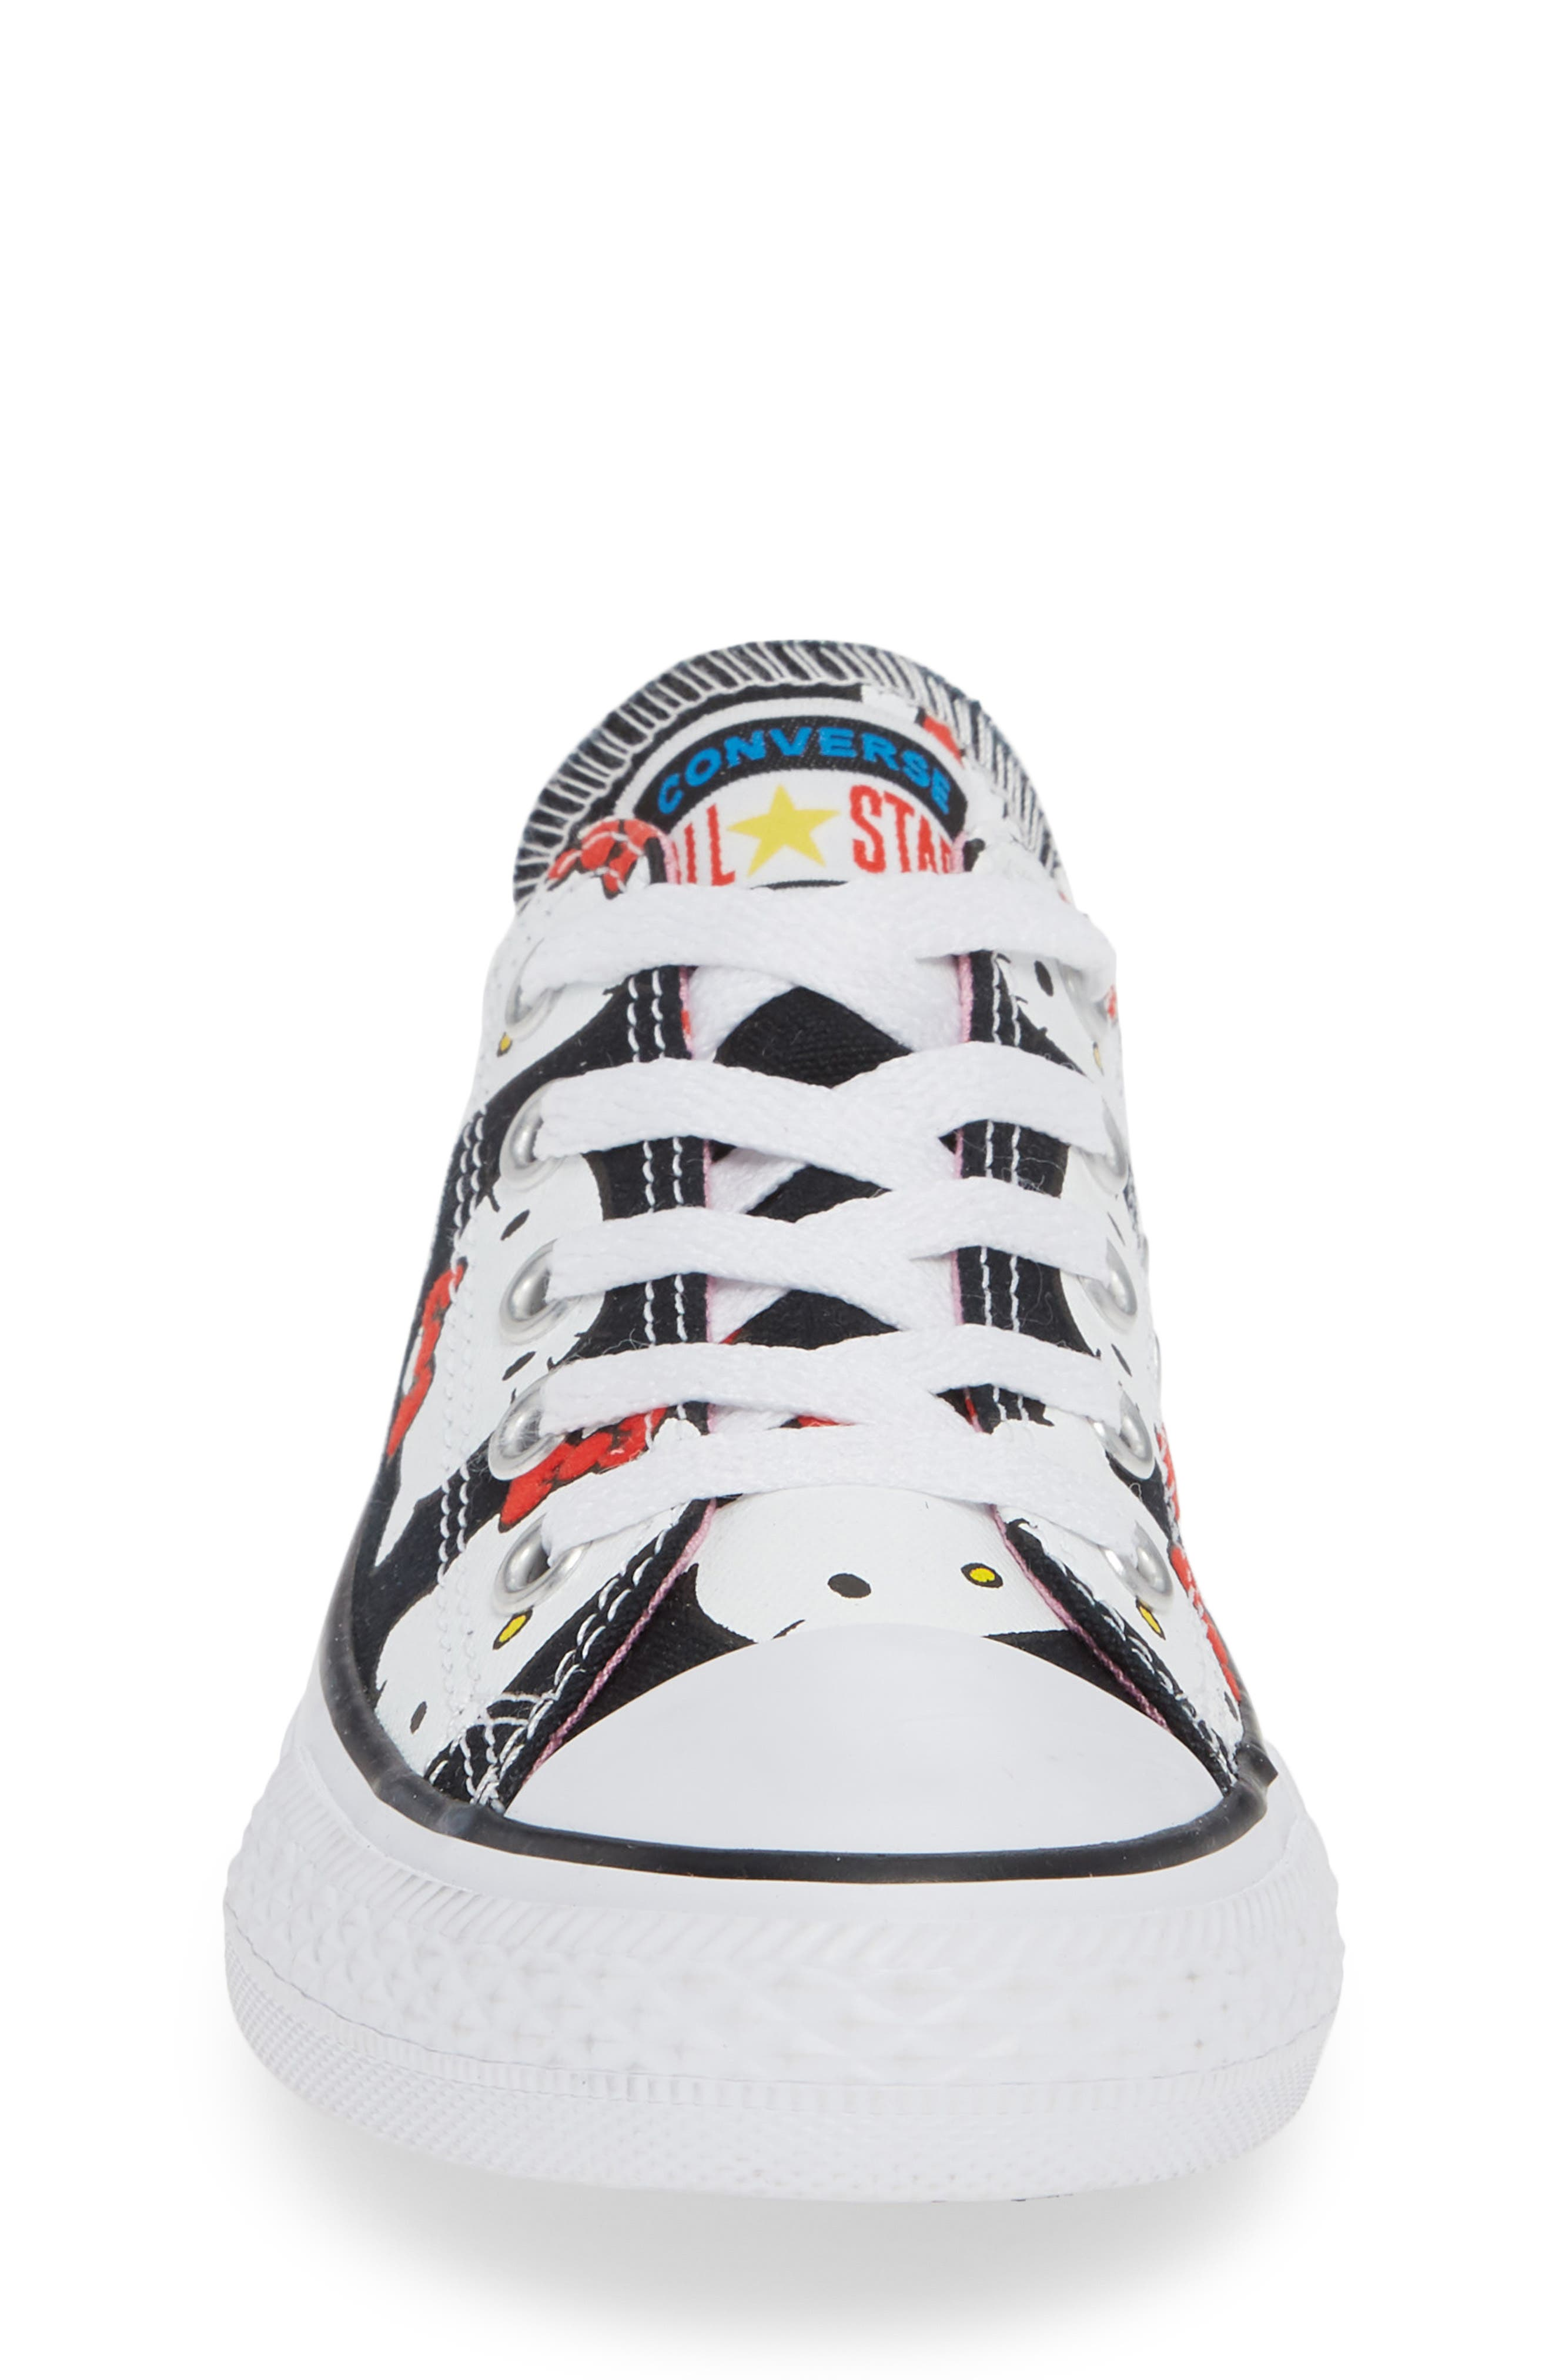 CONVERSE,                             Chuck Taylor<sup>®</sup> All Star<sup>®</sup> Hello Kitty<sup>®</sup> Sneaker,                             Alternate thumbnail 4, color,                             001